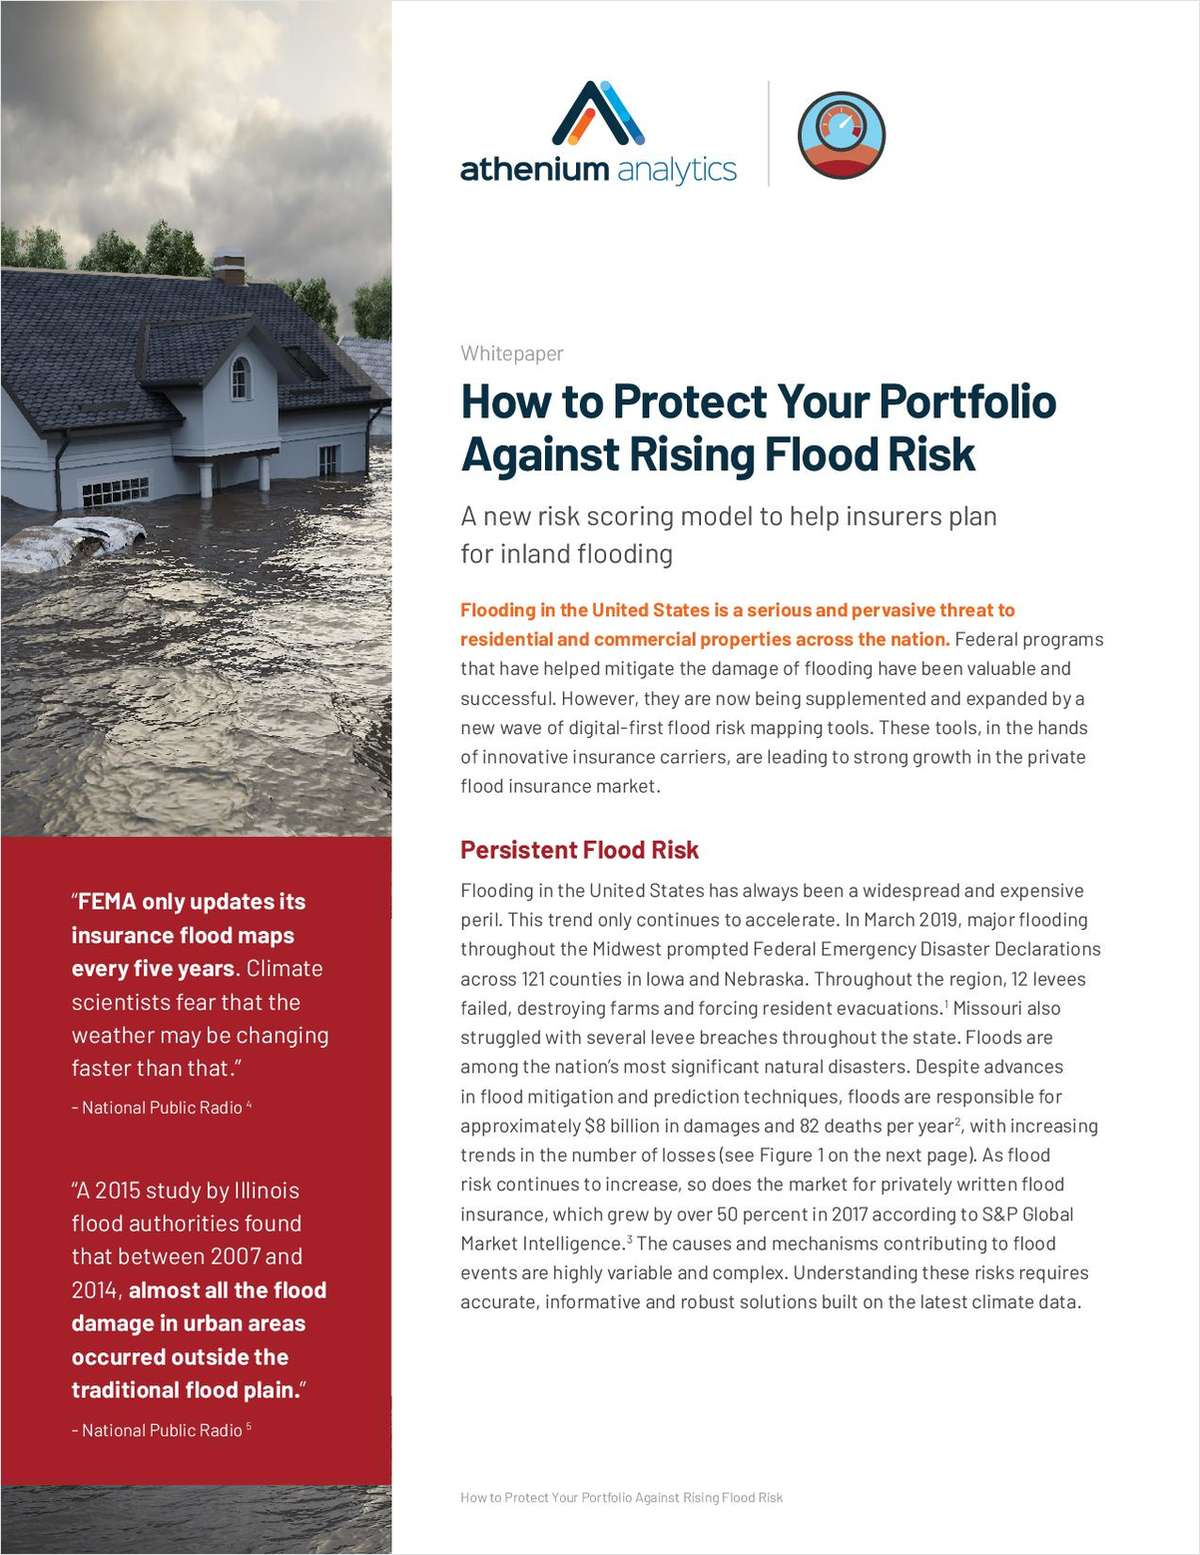 How to Protect Your Portfolio Against Rising Flood Risk